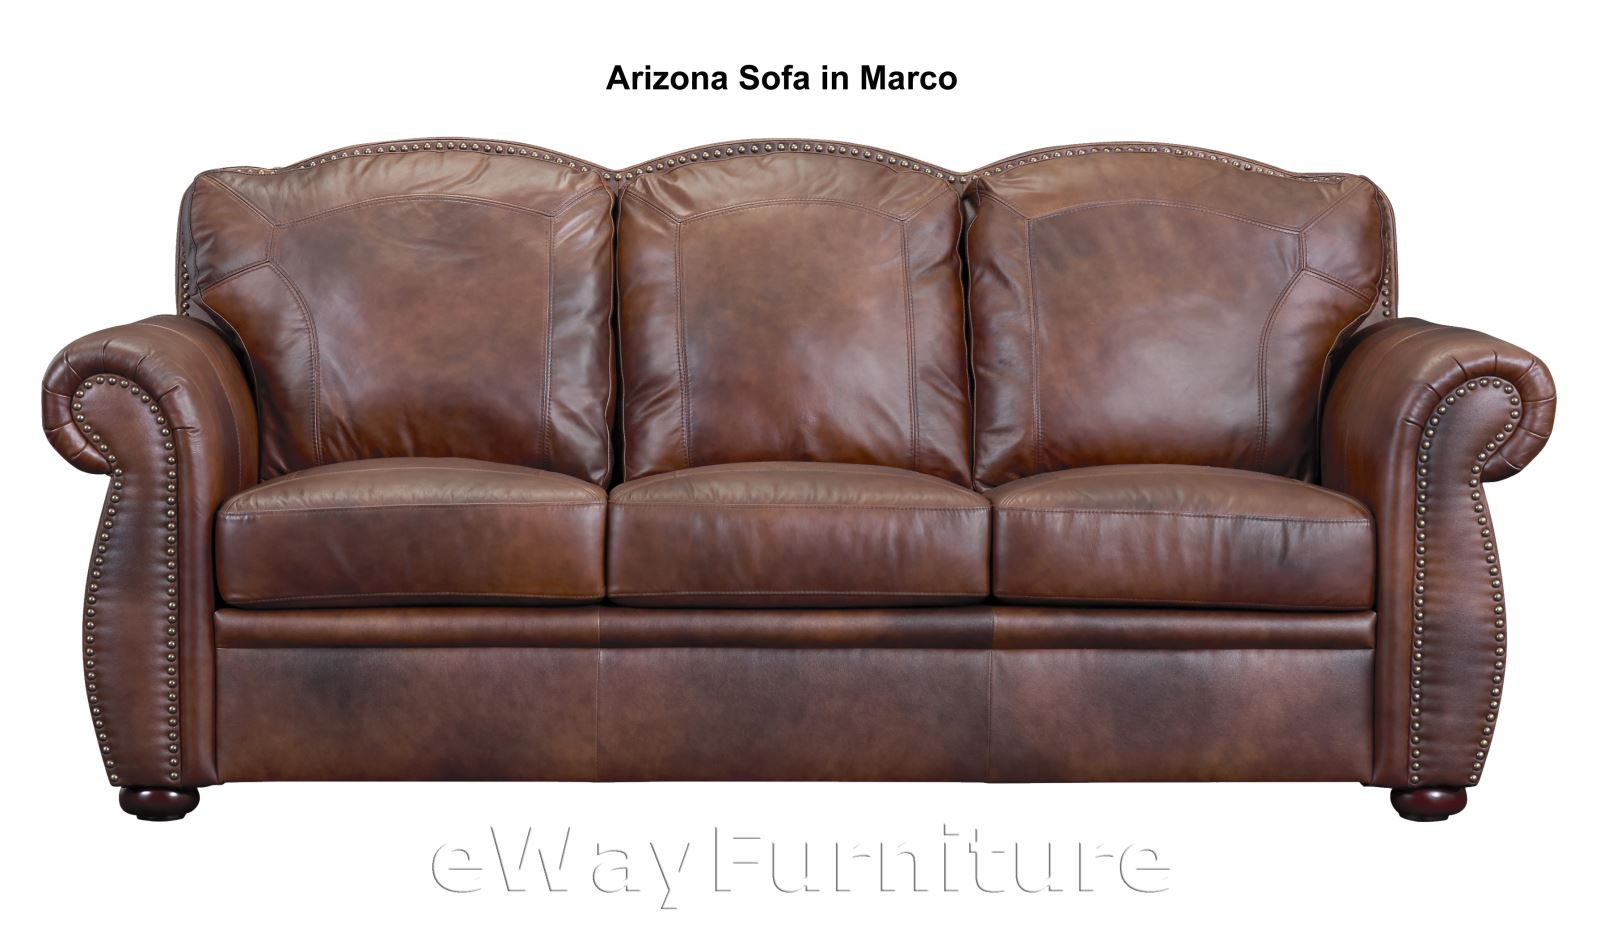 Arizona Top Grain Leather Sofa In Marco